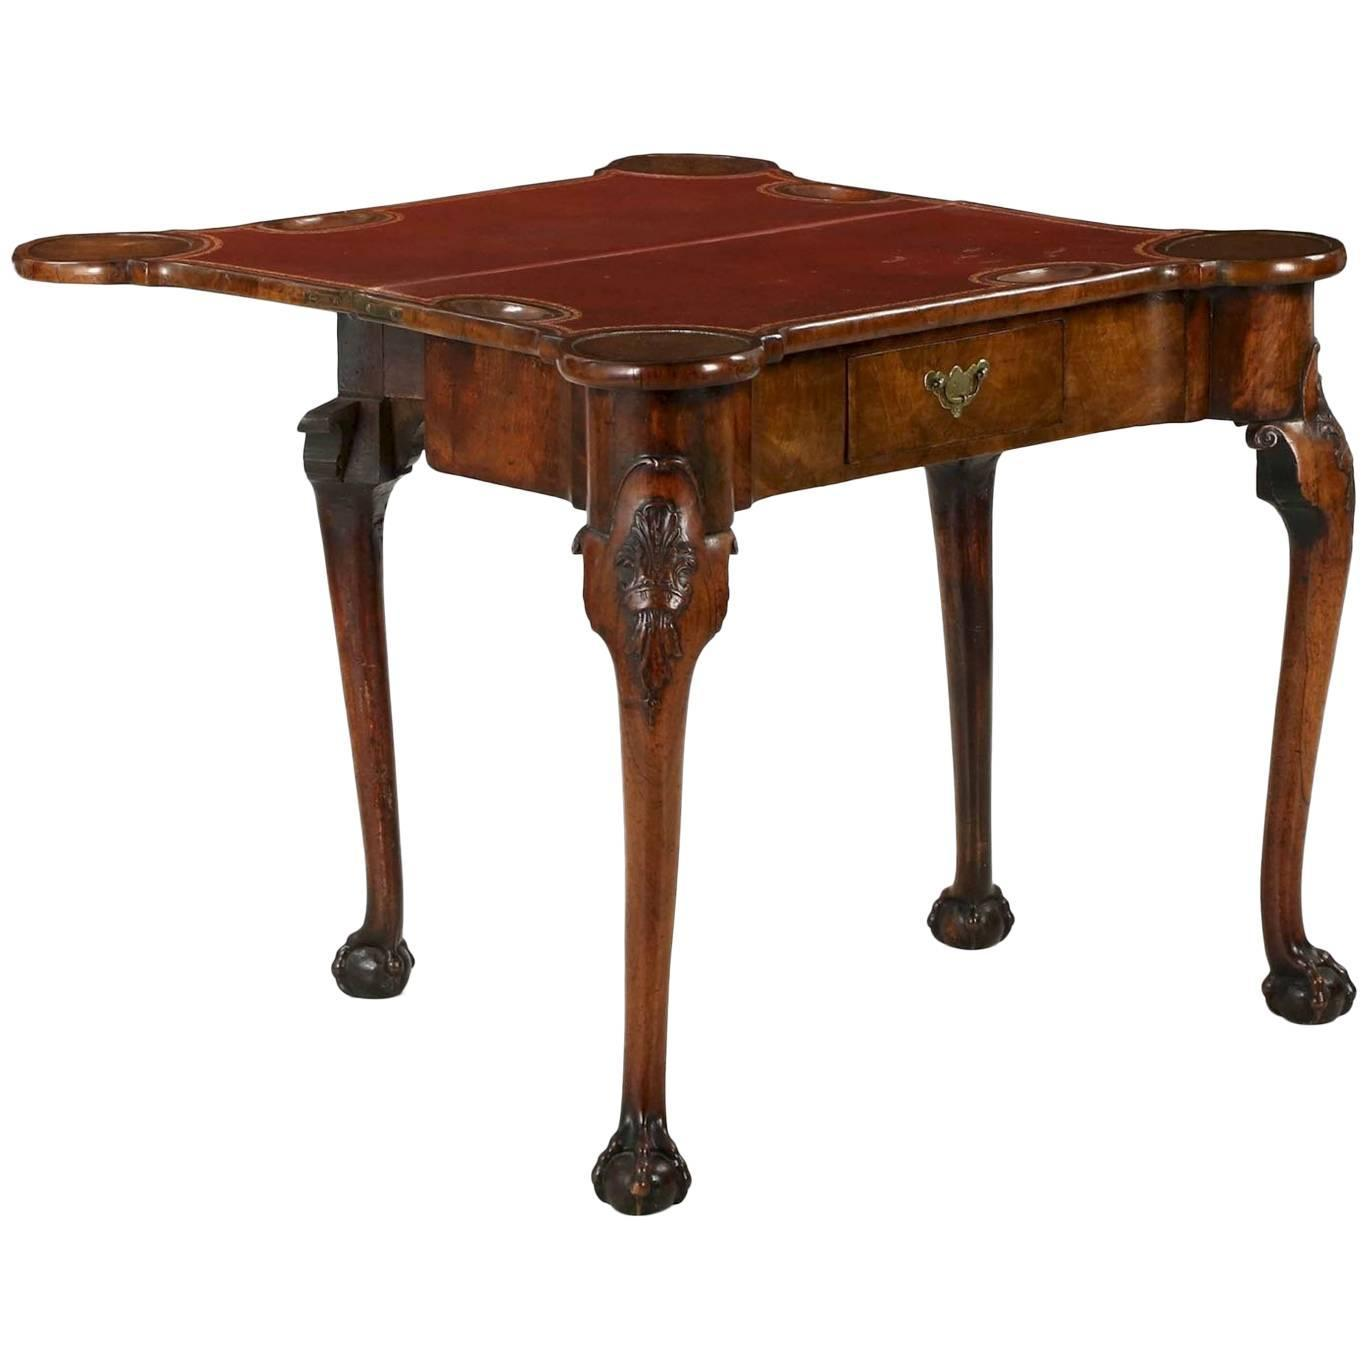 George Ii Carved Walnut Ball And Claw Card Table Circa 1750